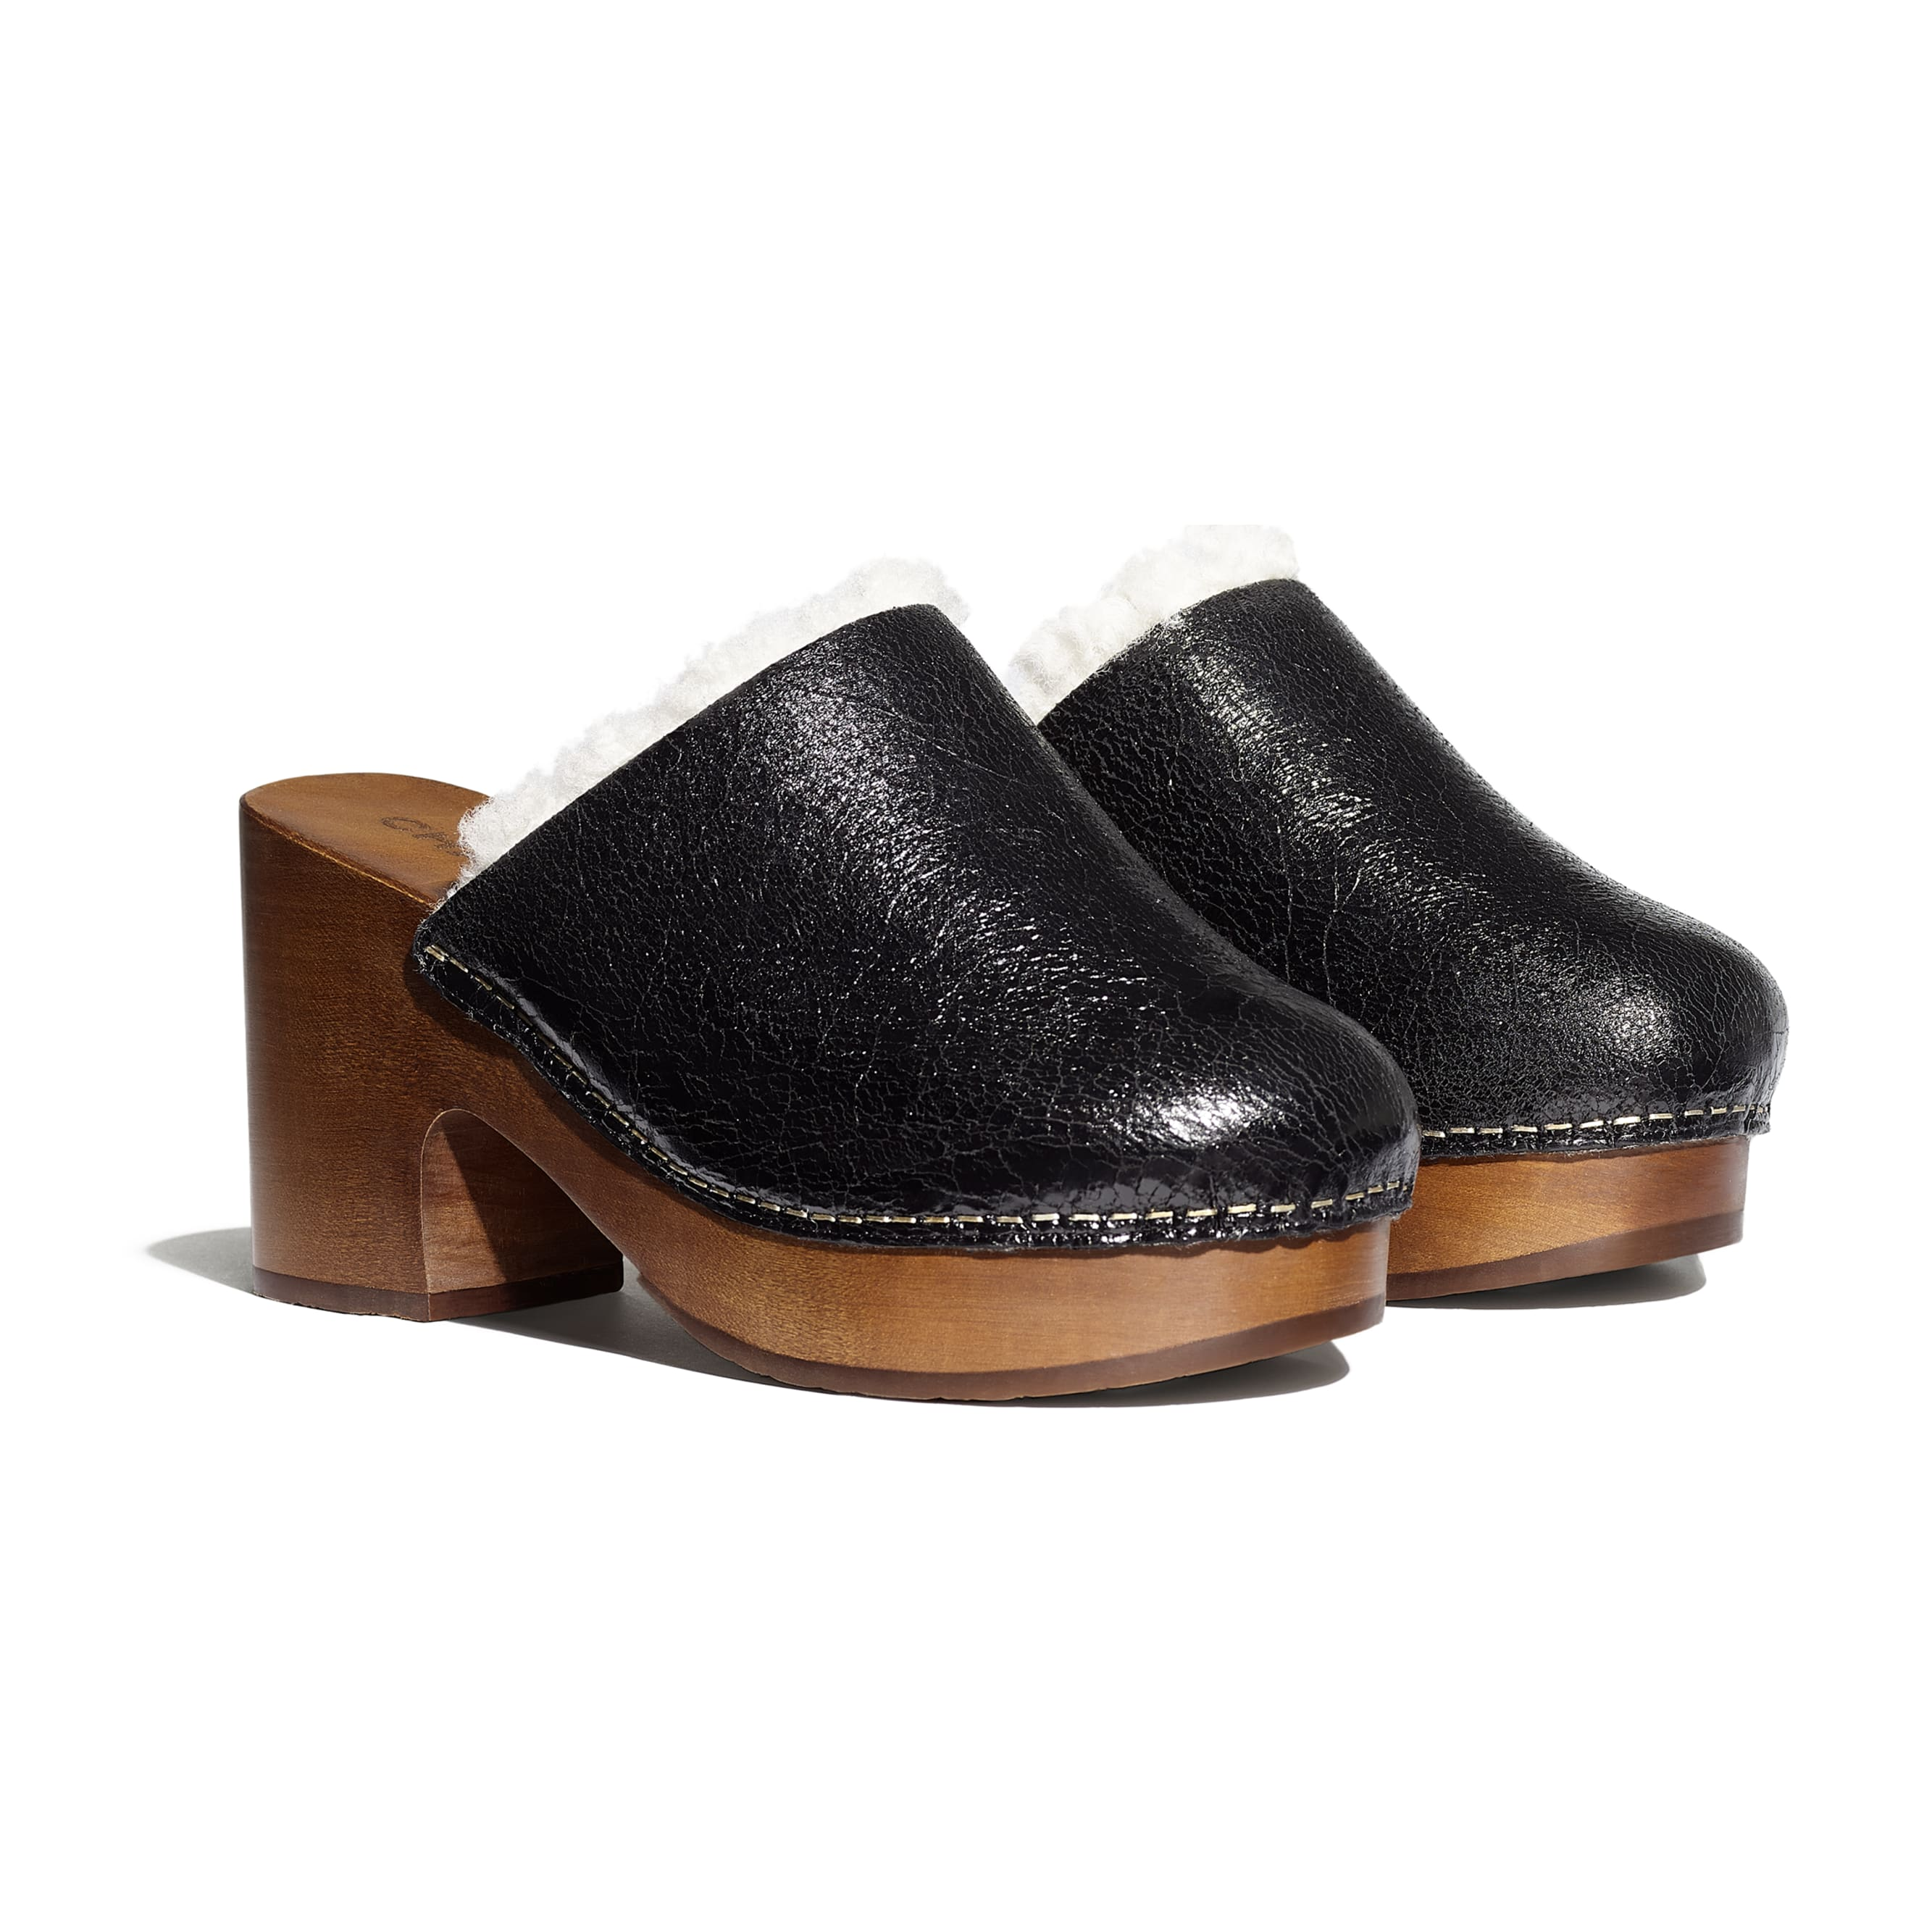 Clogs - Black - Crackled Sheepskin & Shearling - Alternative view - see standard sized version